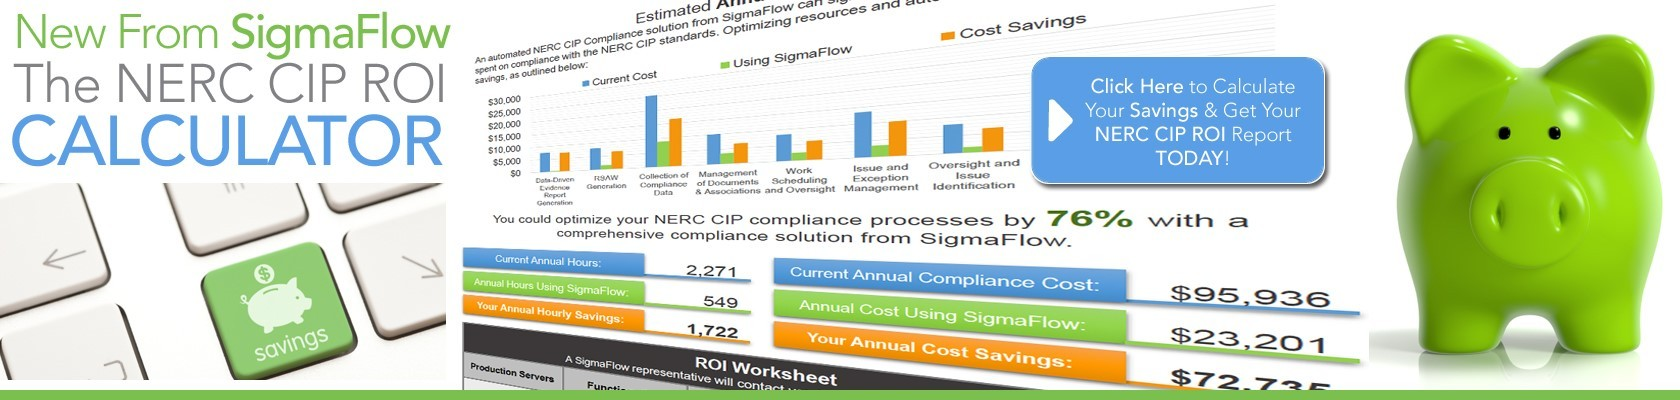 NERC CIP ROI Calculator